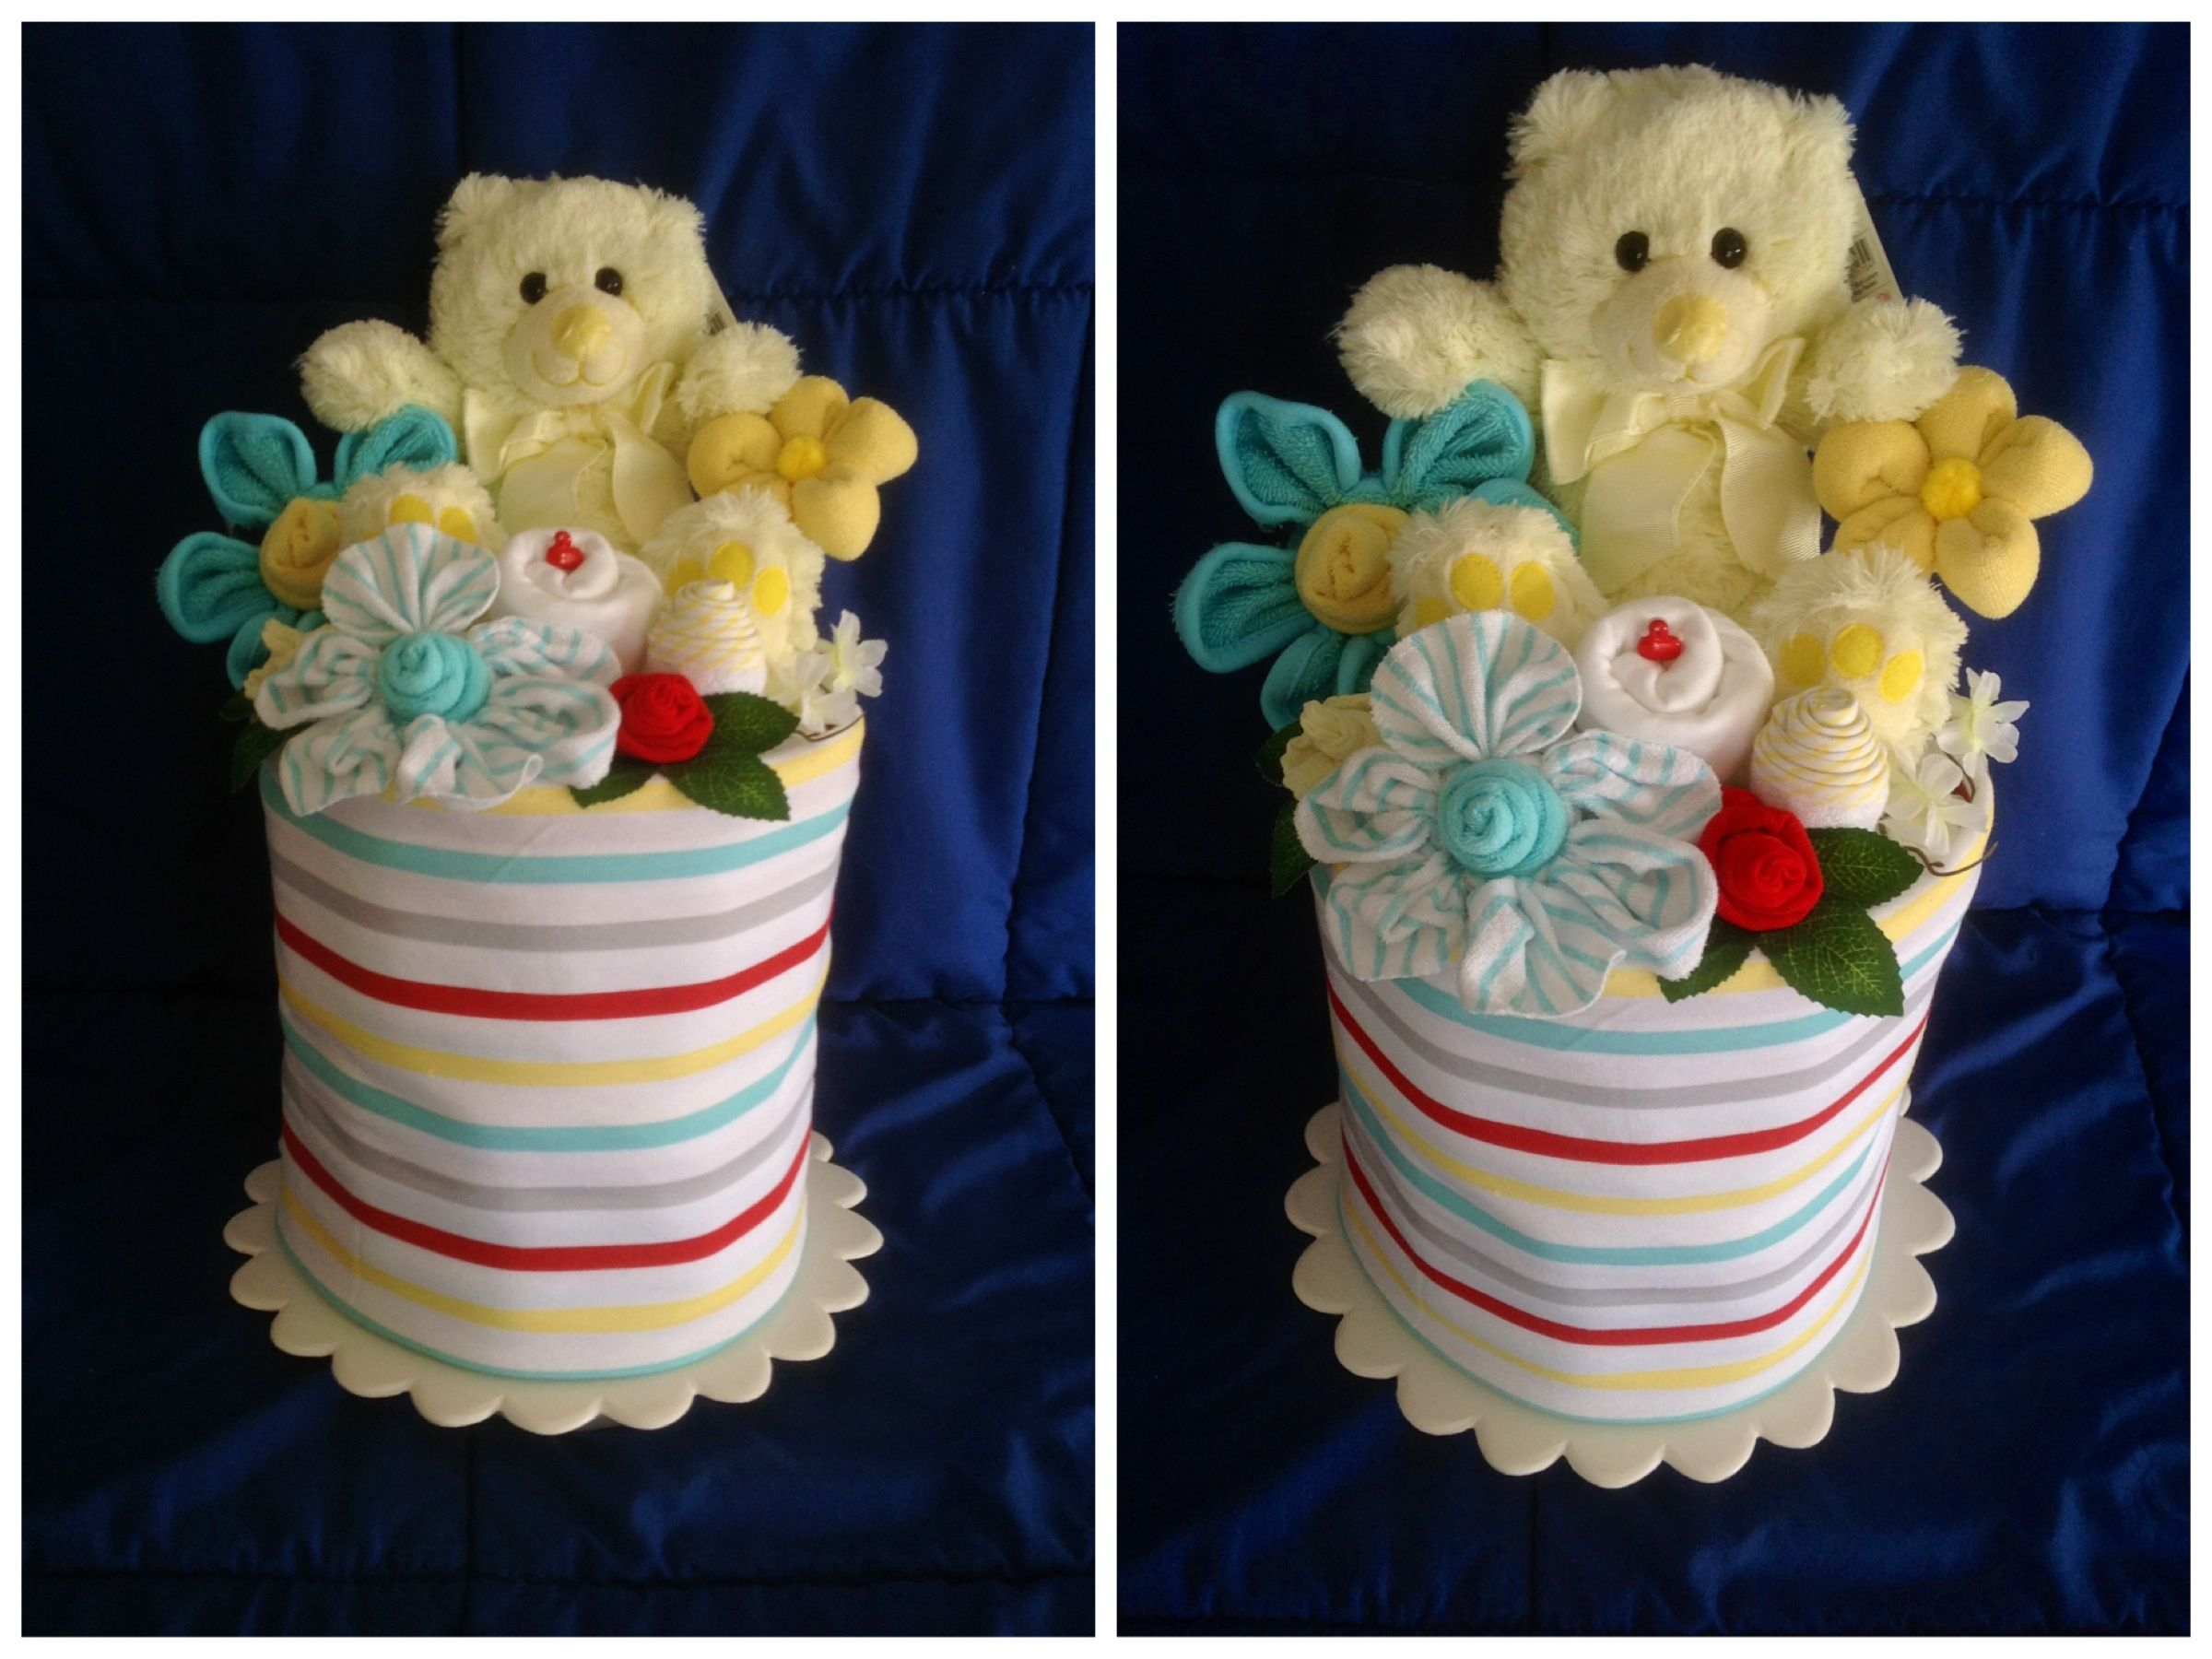 Nappy cake baby gifts wrapped in cotton baby blanket chock a baby gifts wrapped in cotton baby blanket chock a block full of disposable nappiesdiapers topped with baby onesies sox bibs mittens hat singlet negle Image collections